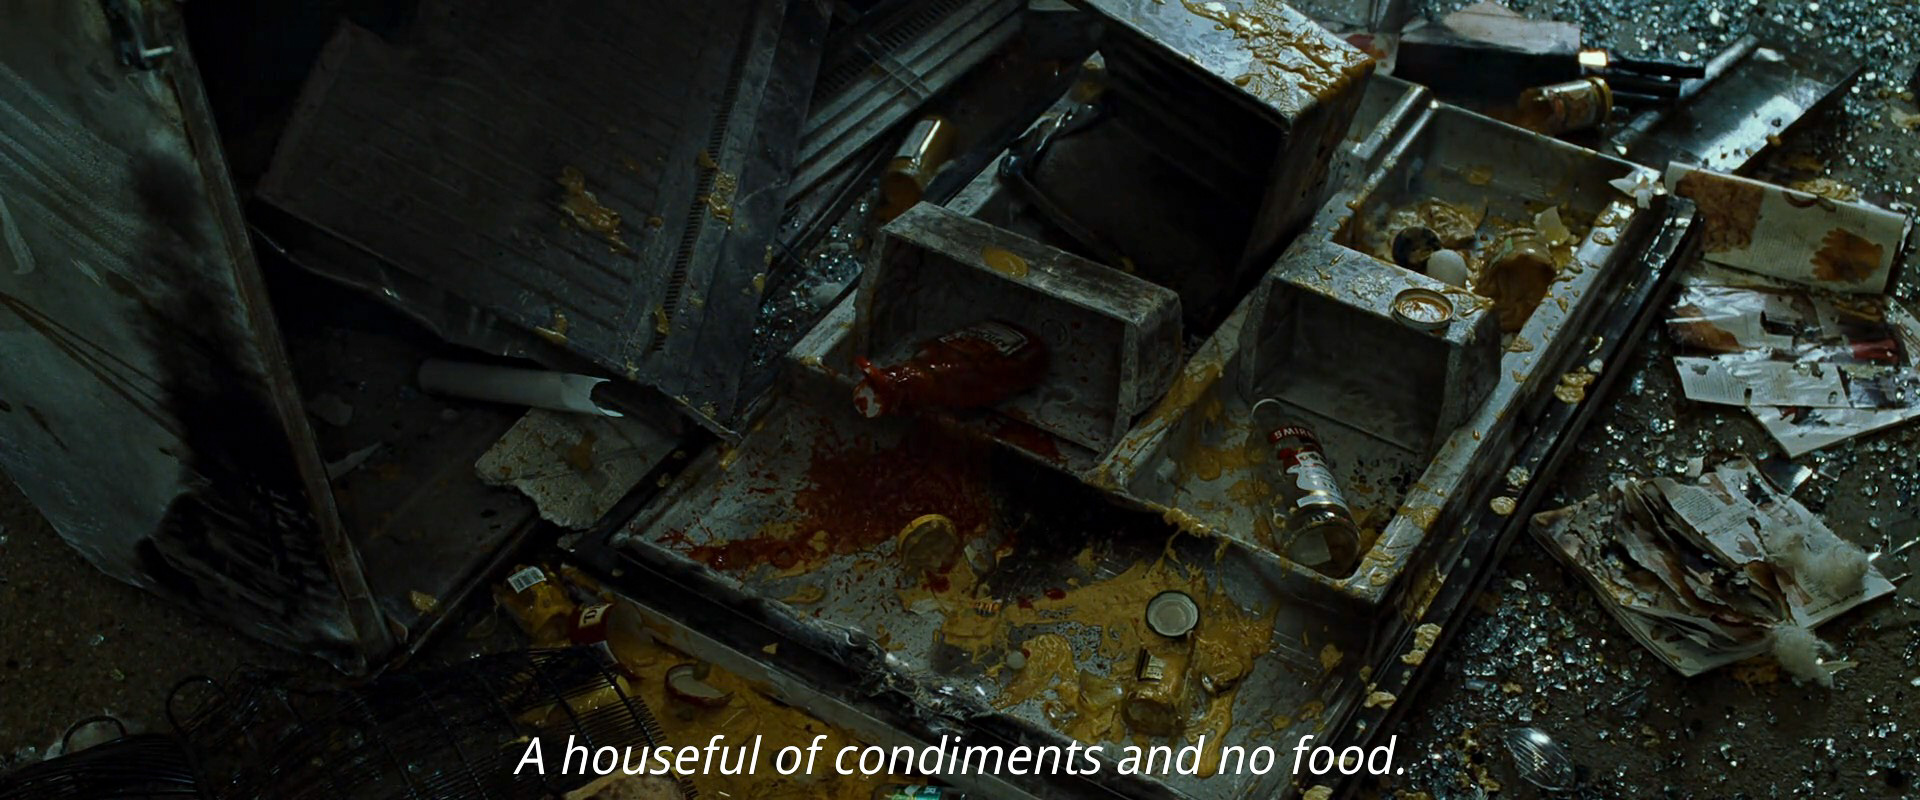 fight club cinematography life lessons-9.jpg